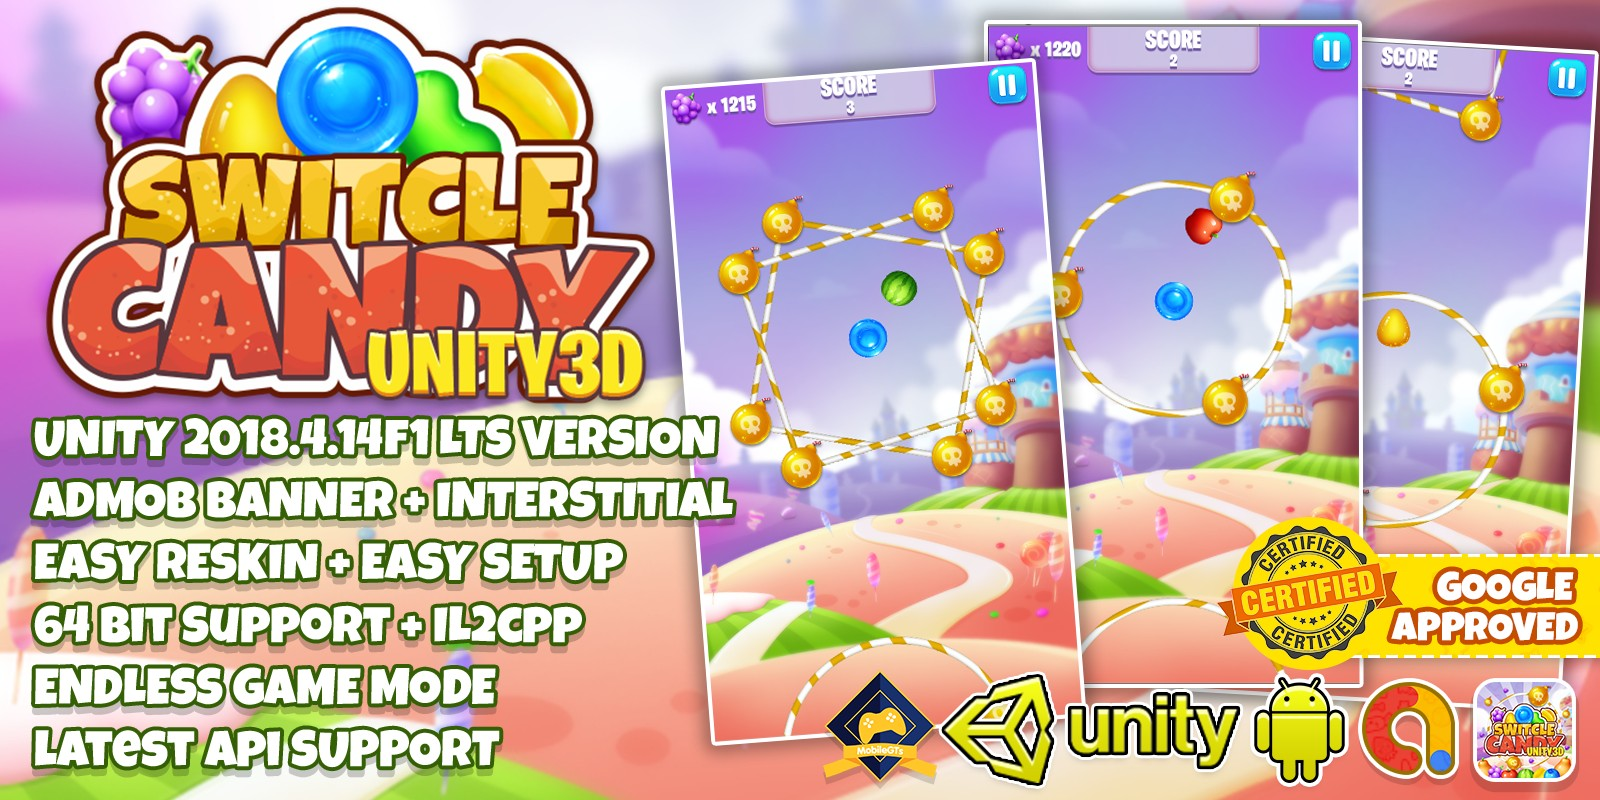 Switch Candy - Complete Unity3D Project